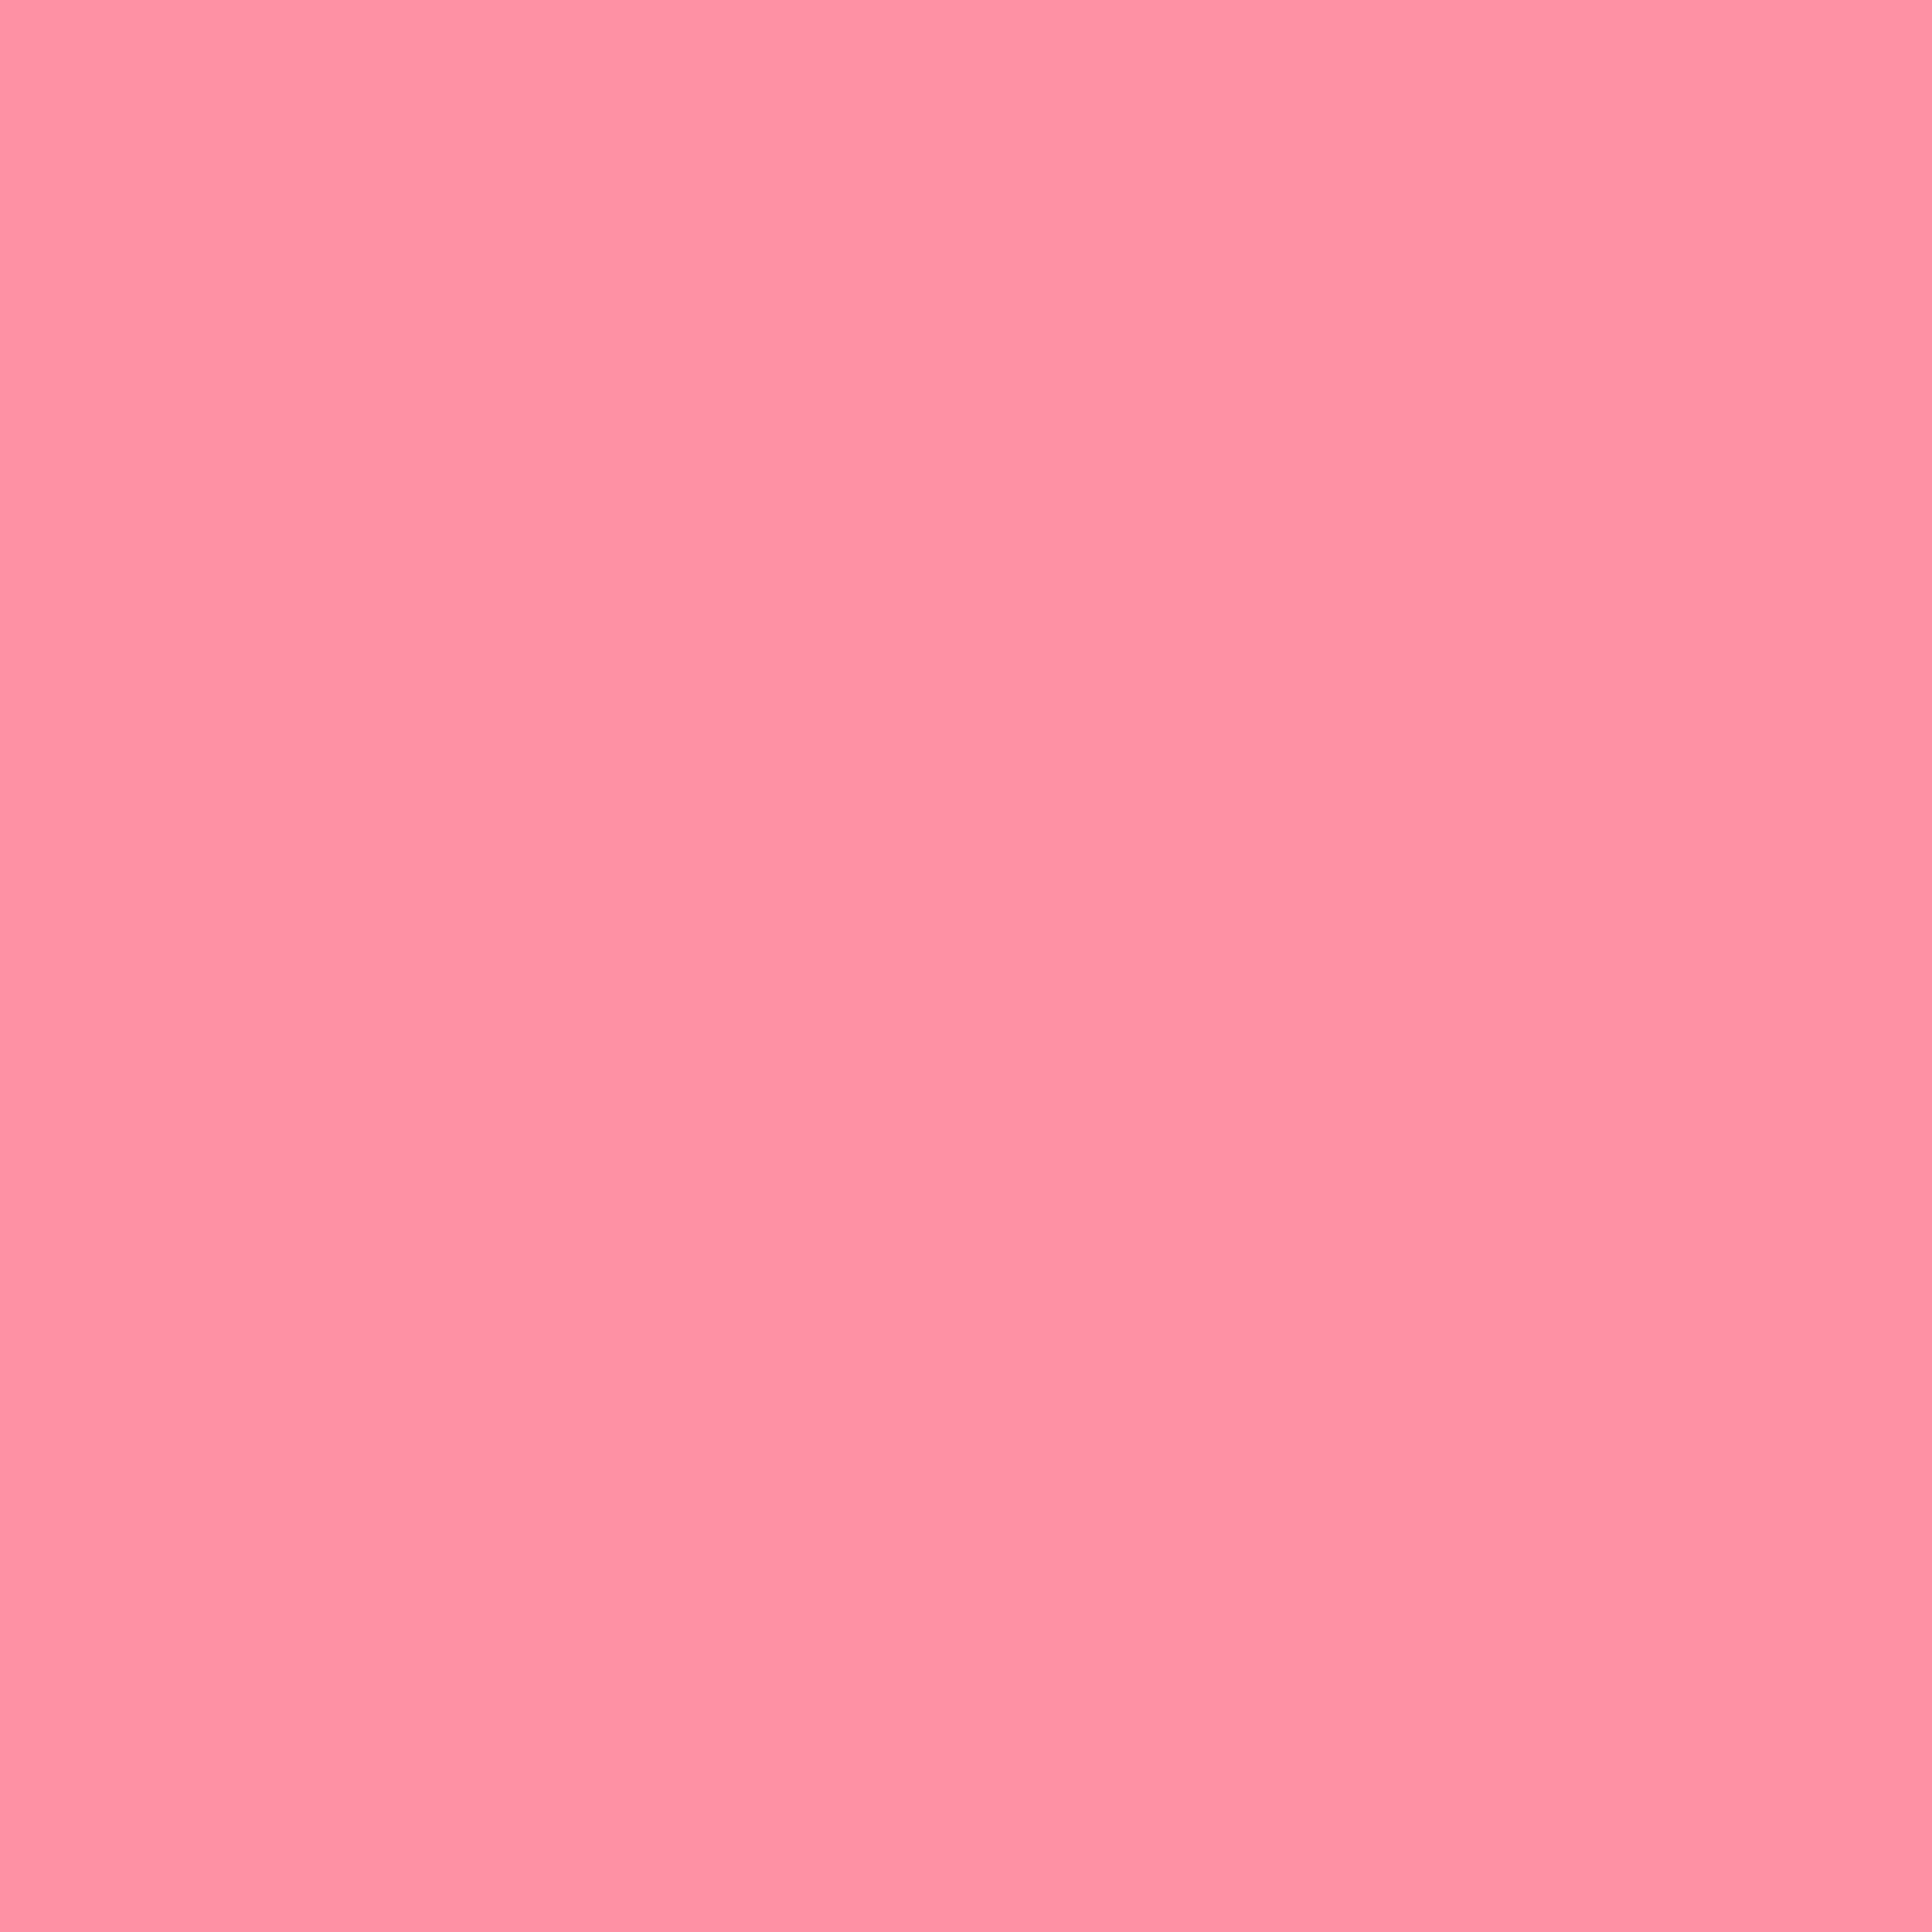 2048x2048 Salmon Pink Solid Color Background